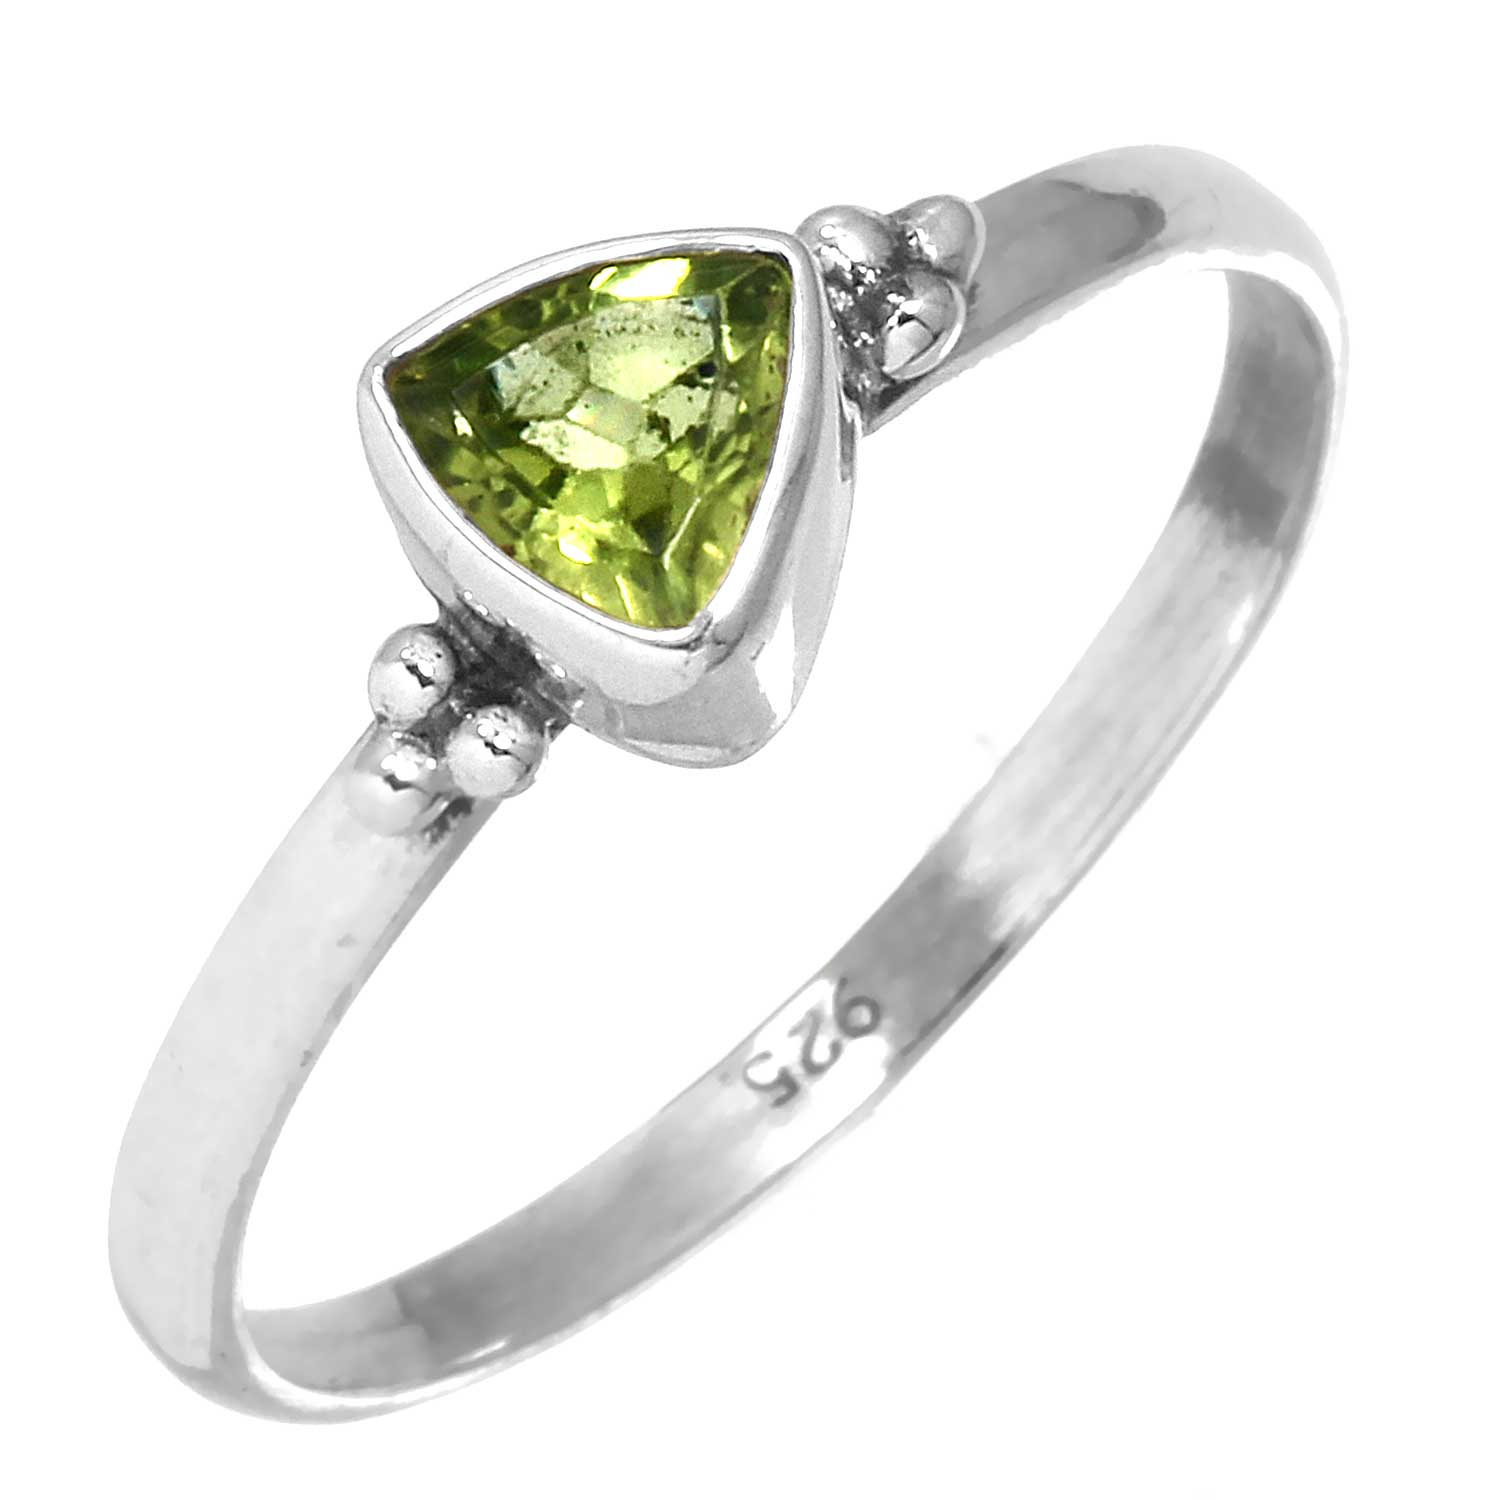 Sterling silver Peridot (1.5ctw) Ring